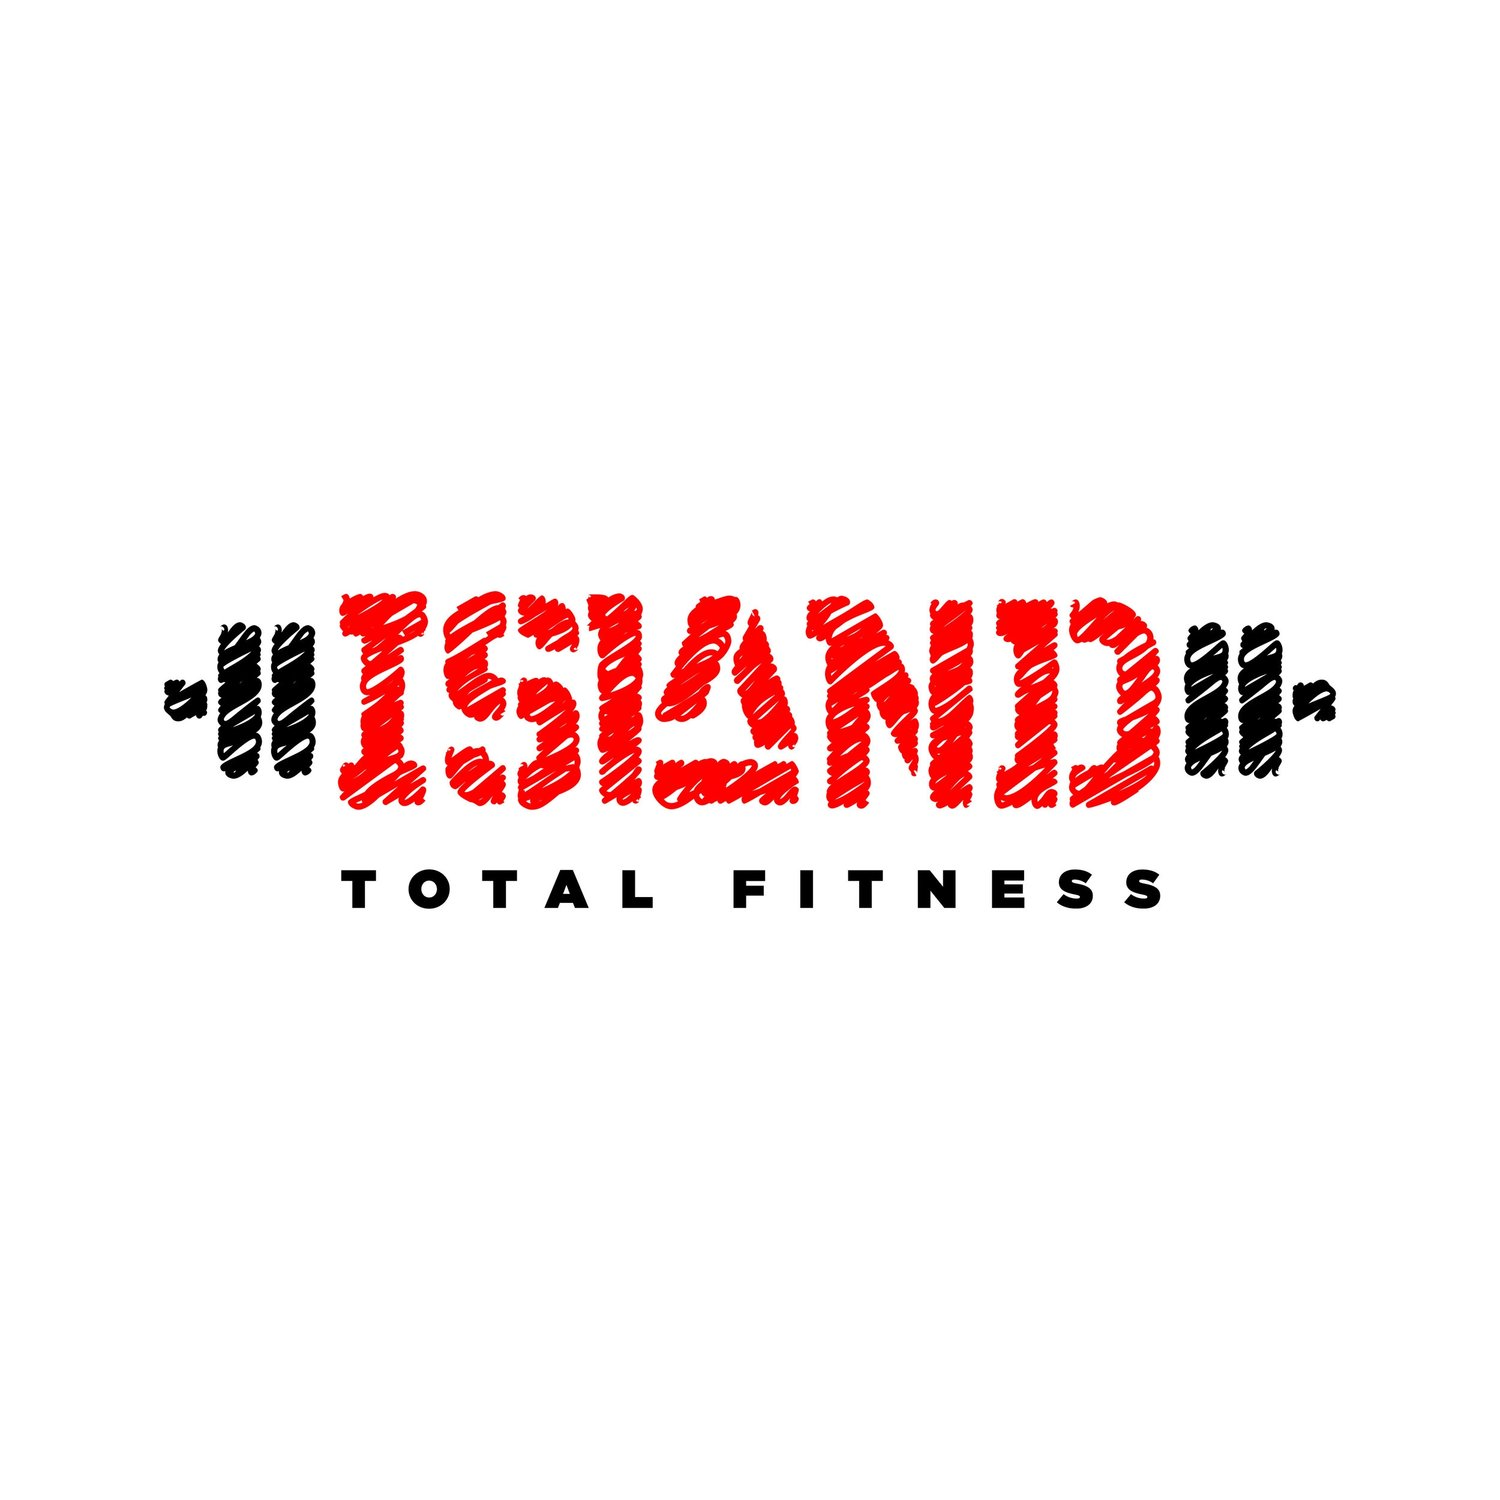 ISLAND TOTAL FITNESS | CROSSFIT | CROSSFIT GYM | PERSONAL TRAINING | STATEN ISLAND, NY | CROSSFIT 103